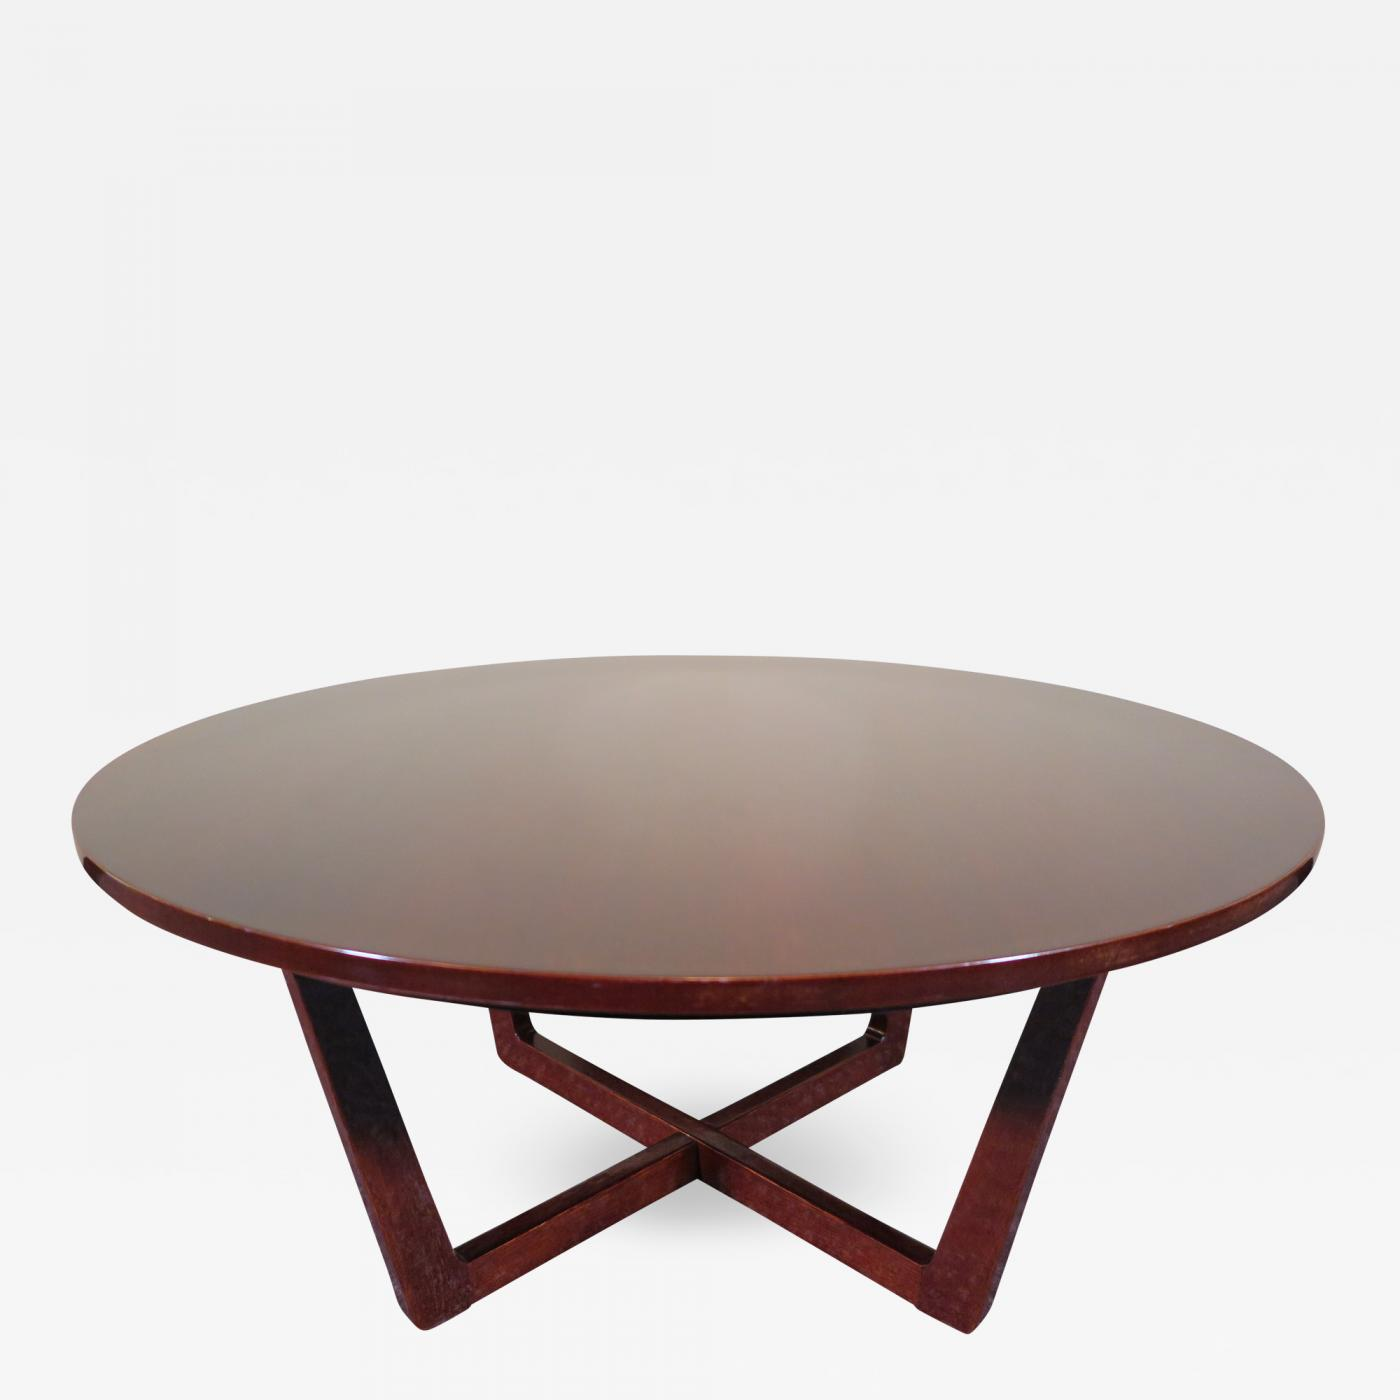 Superbe Listings / Furniture / Tables / Coffee Tables · Mid Century Modern ...